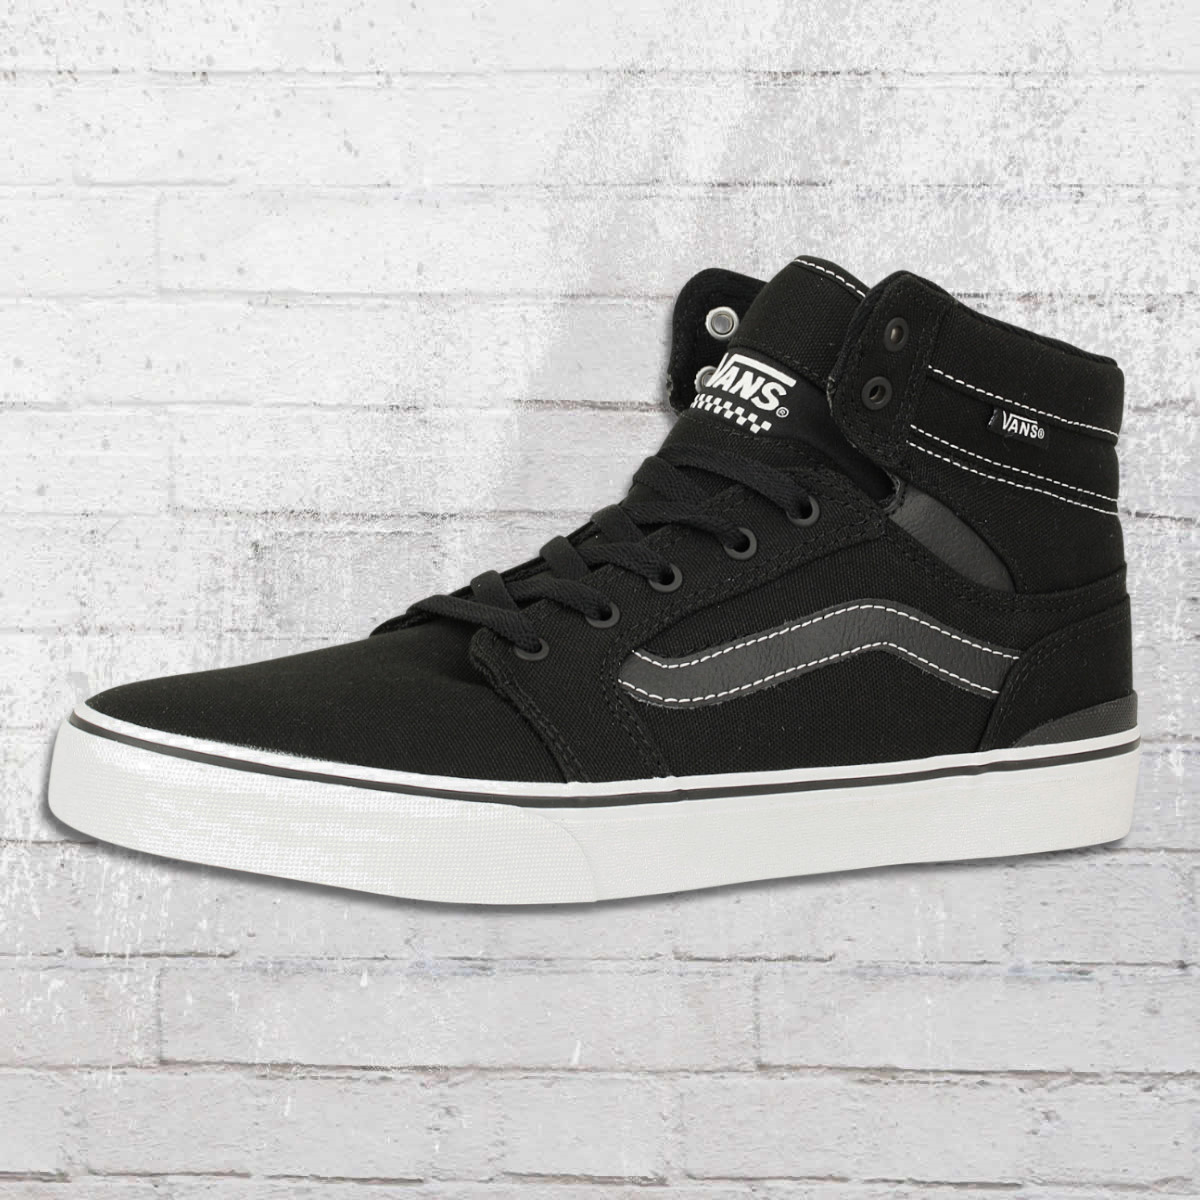 8b433c7ec8dbb Vans Knöchelschuhe Sanction Canvas High Top Sneaker schwarz. ›‹ «